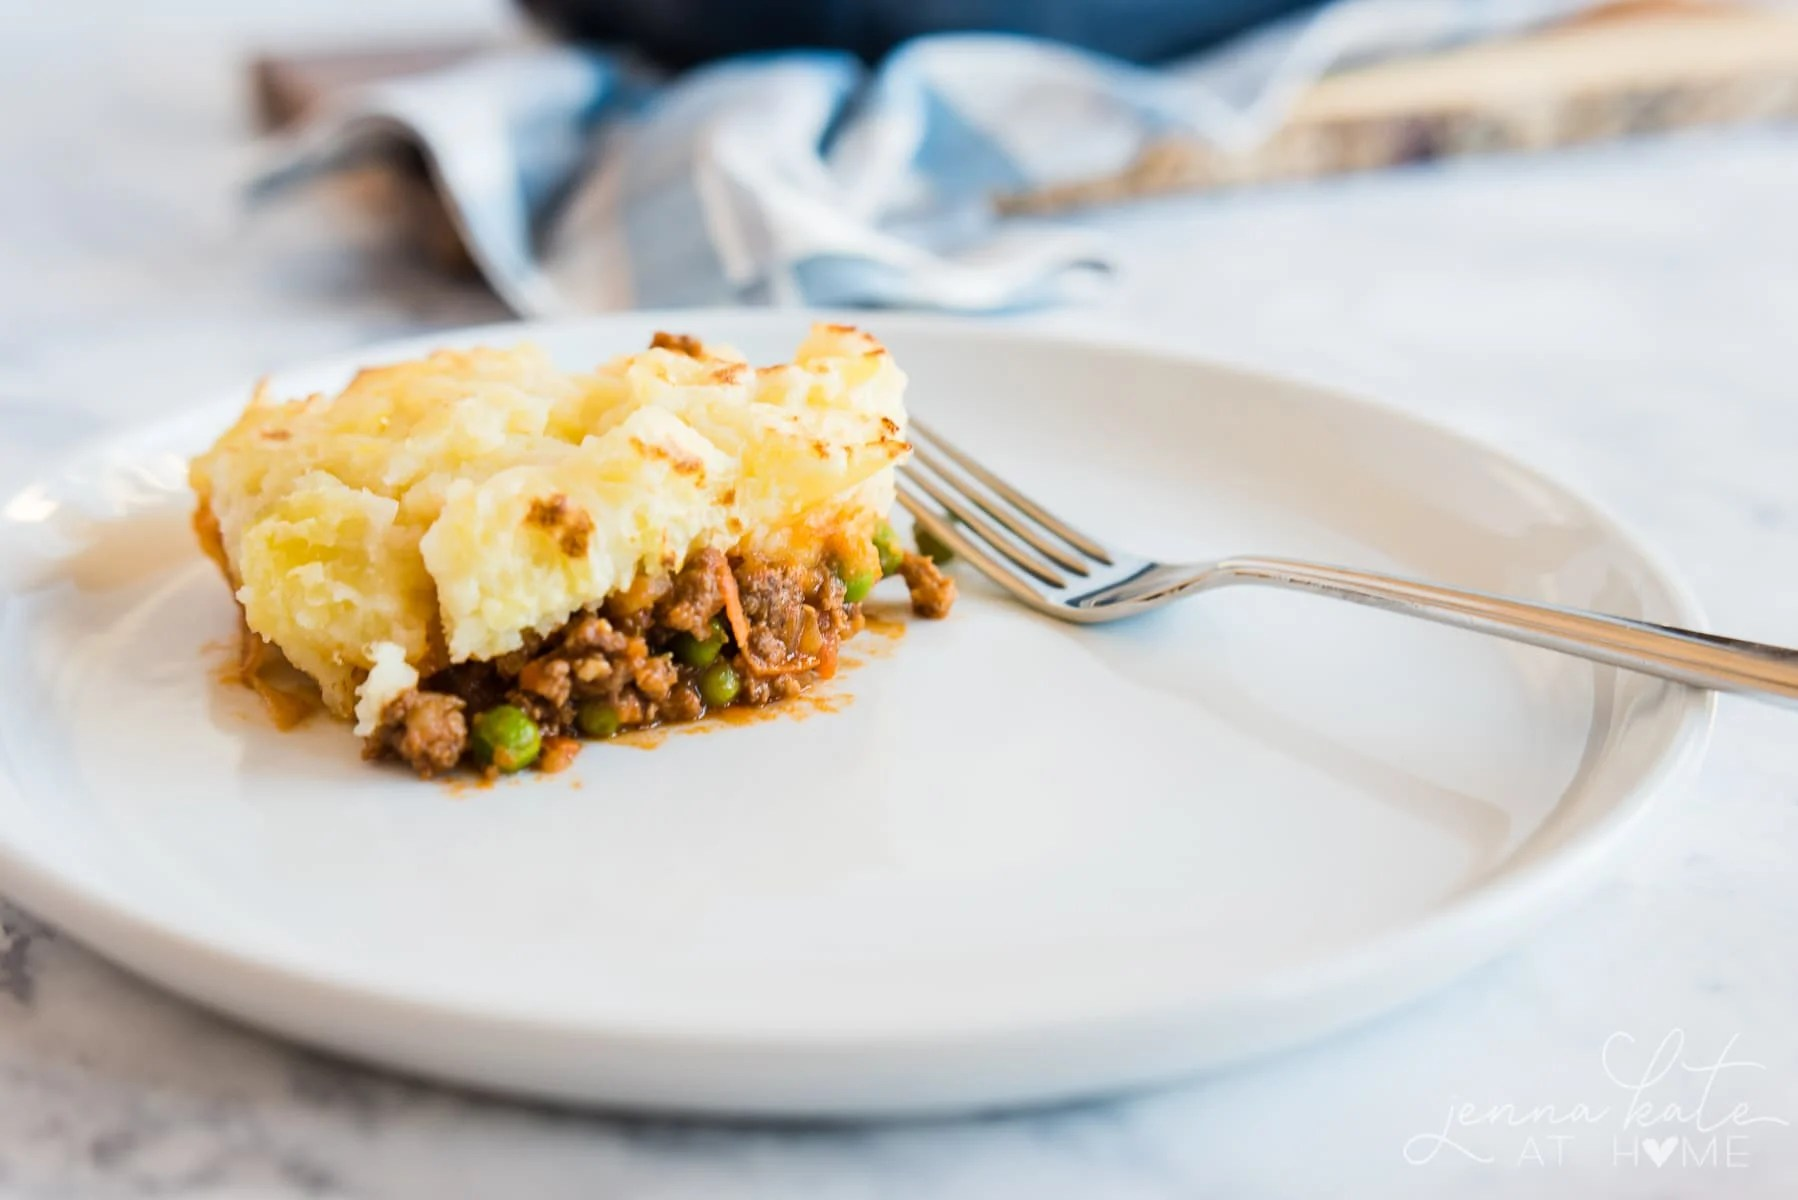 Piece of Shepherd's pie for dinner